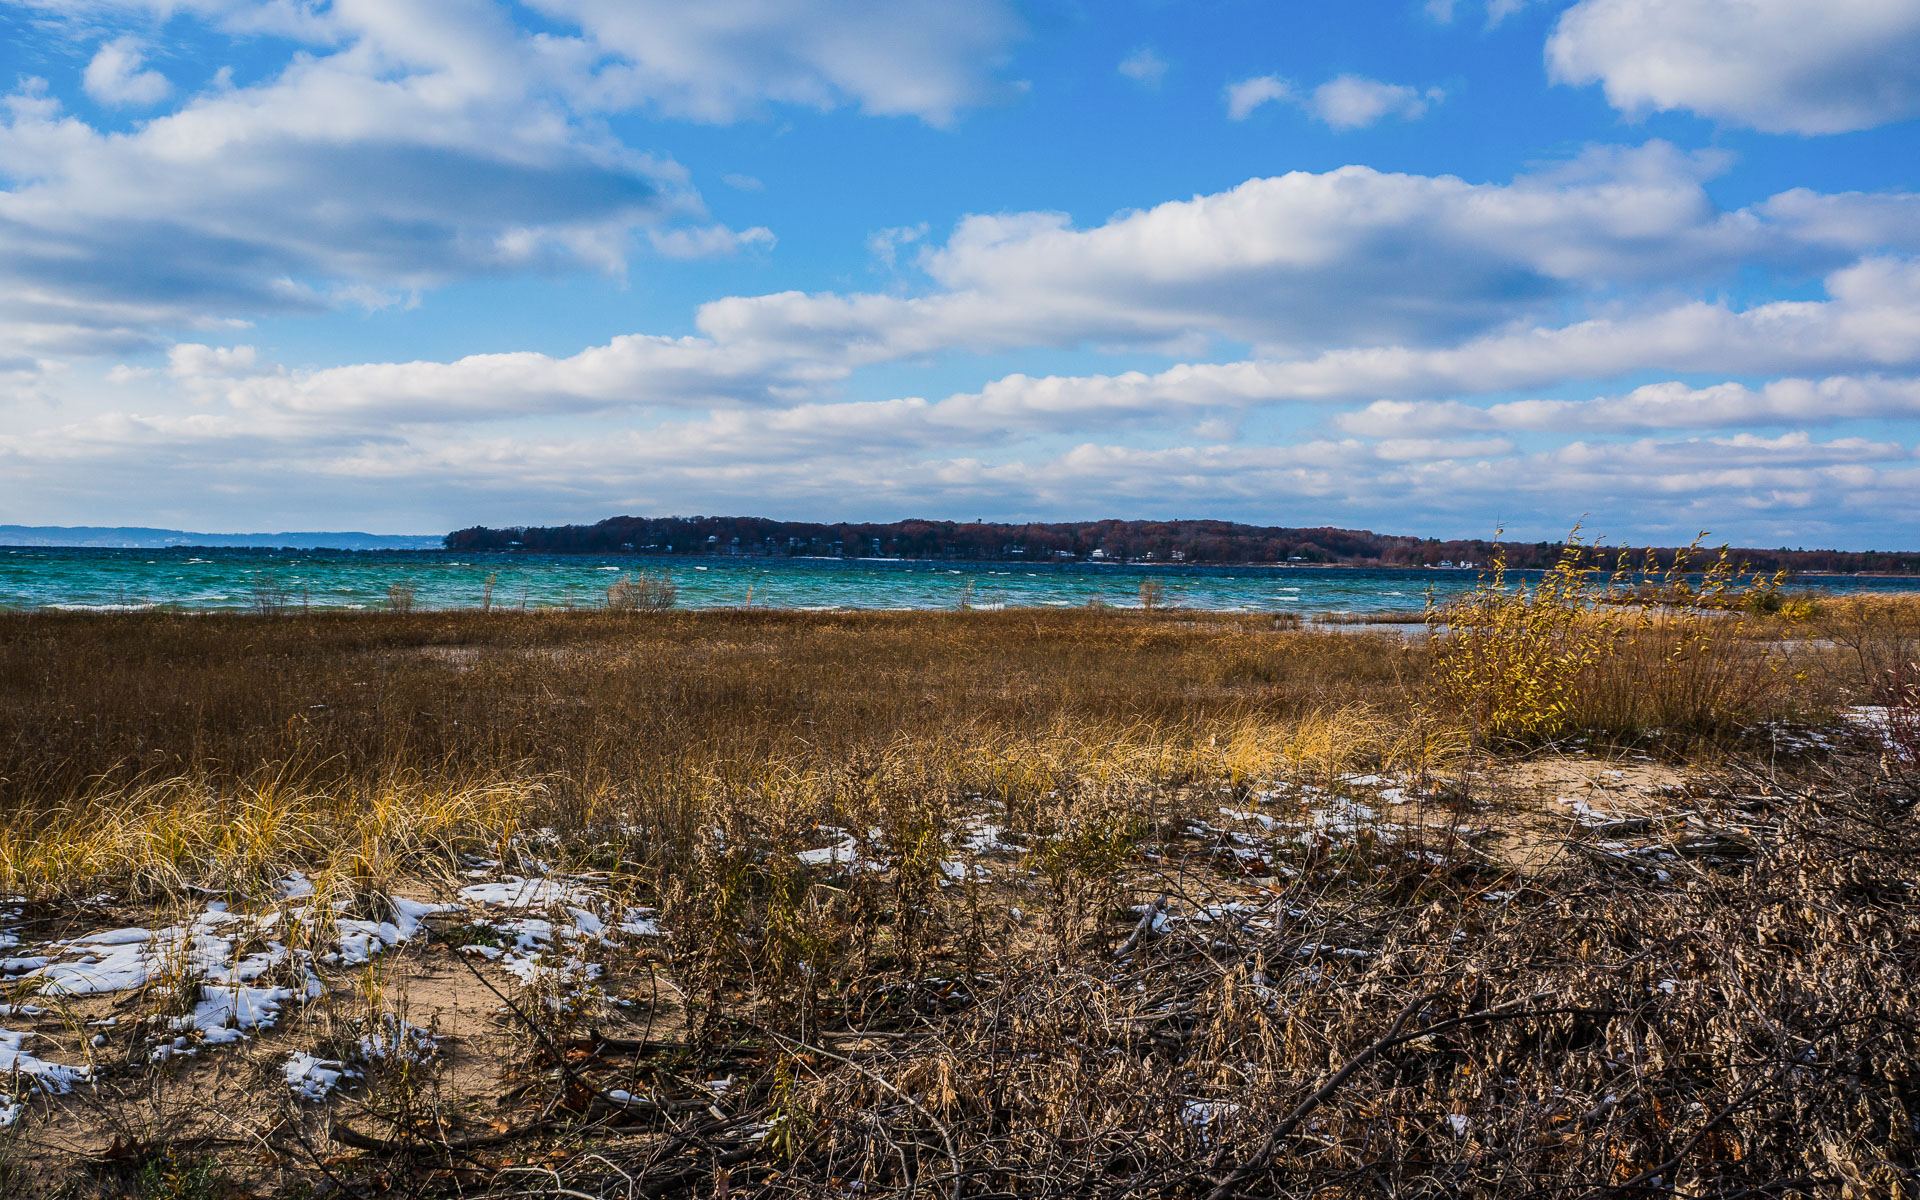 Looking over Lake Michigan - Traverse City, Michigan